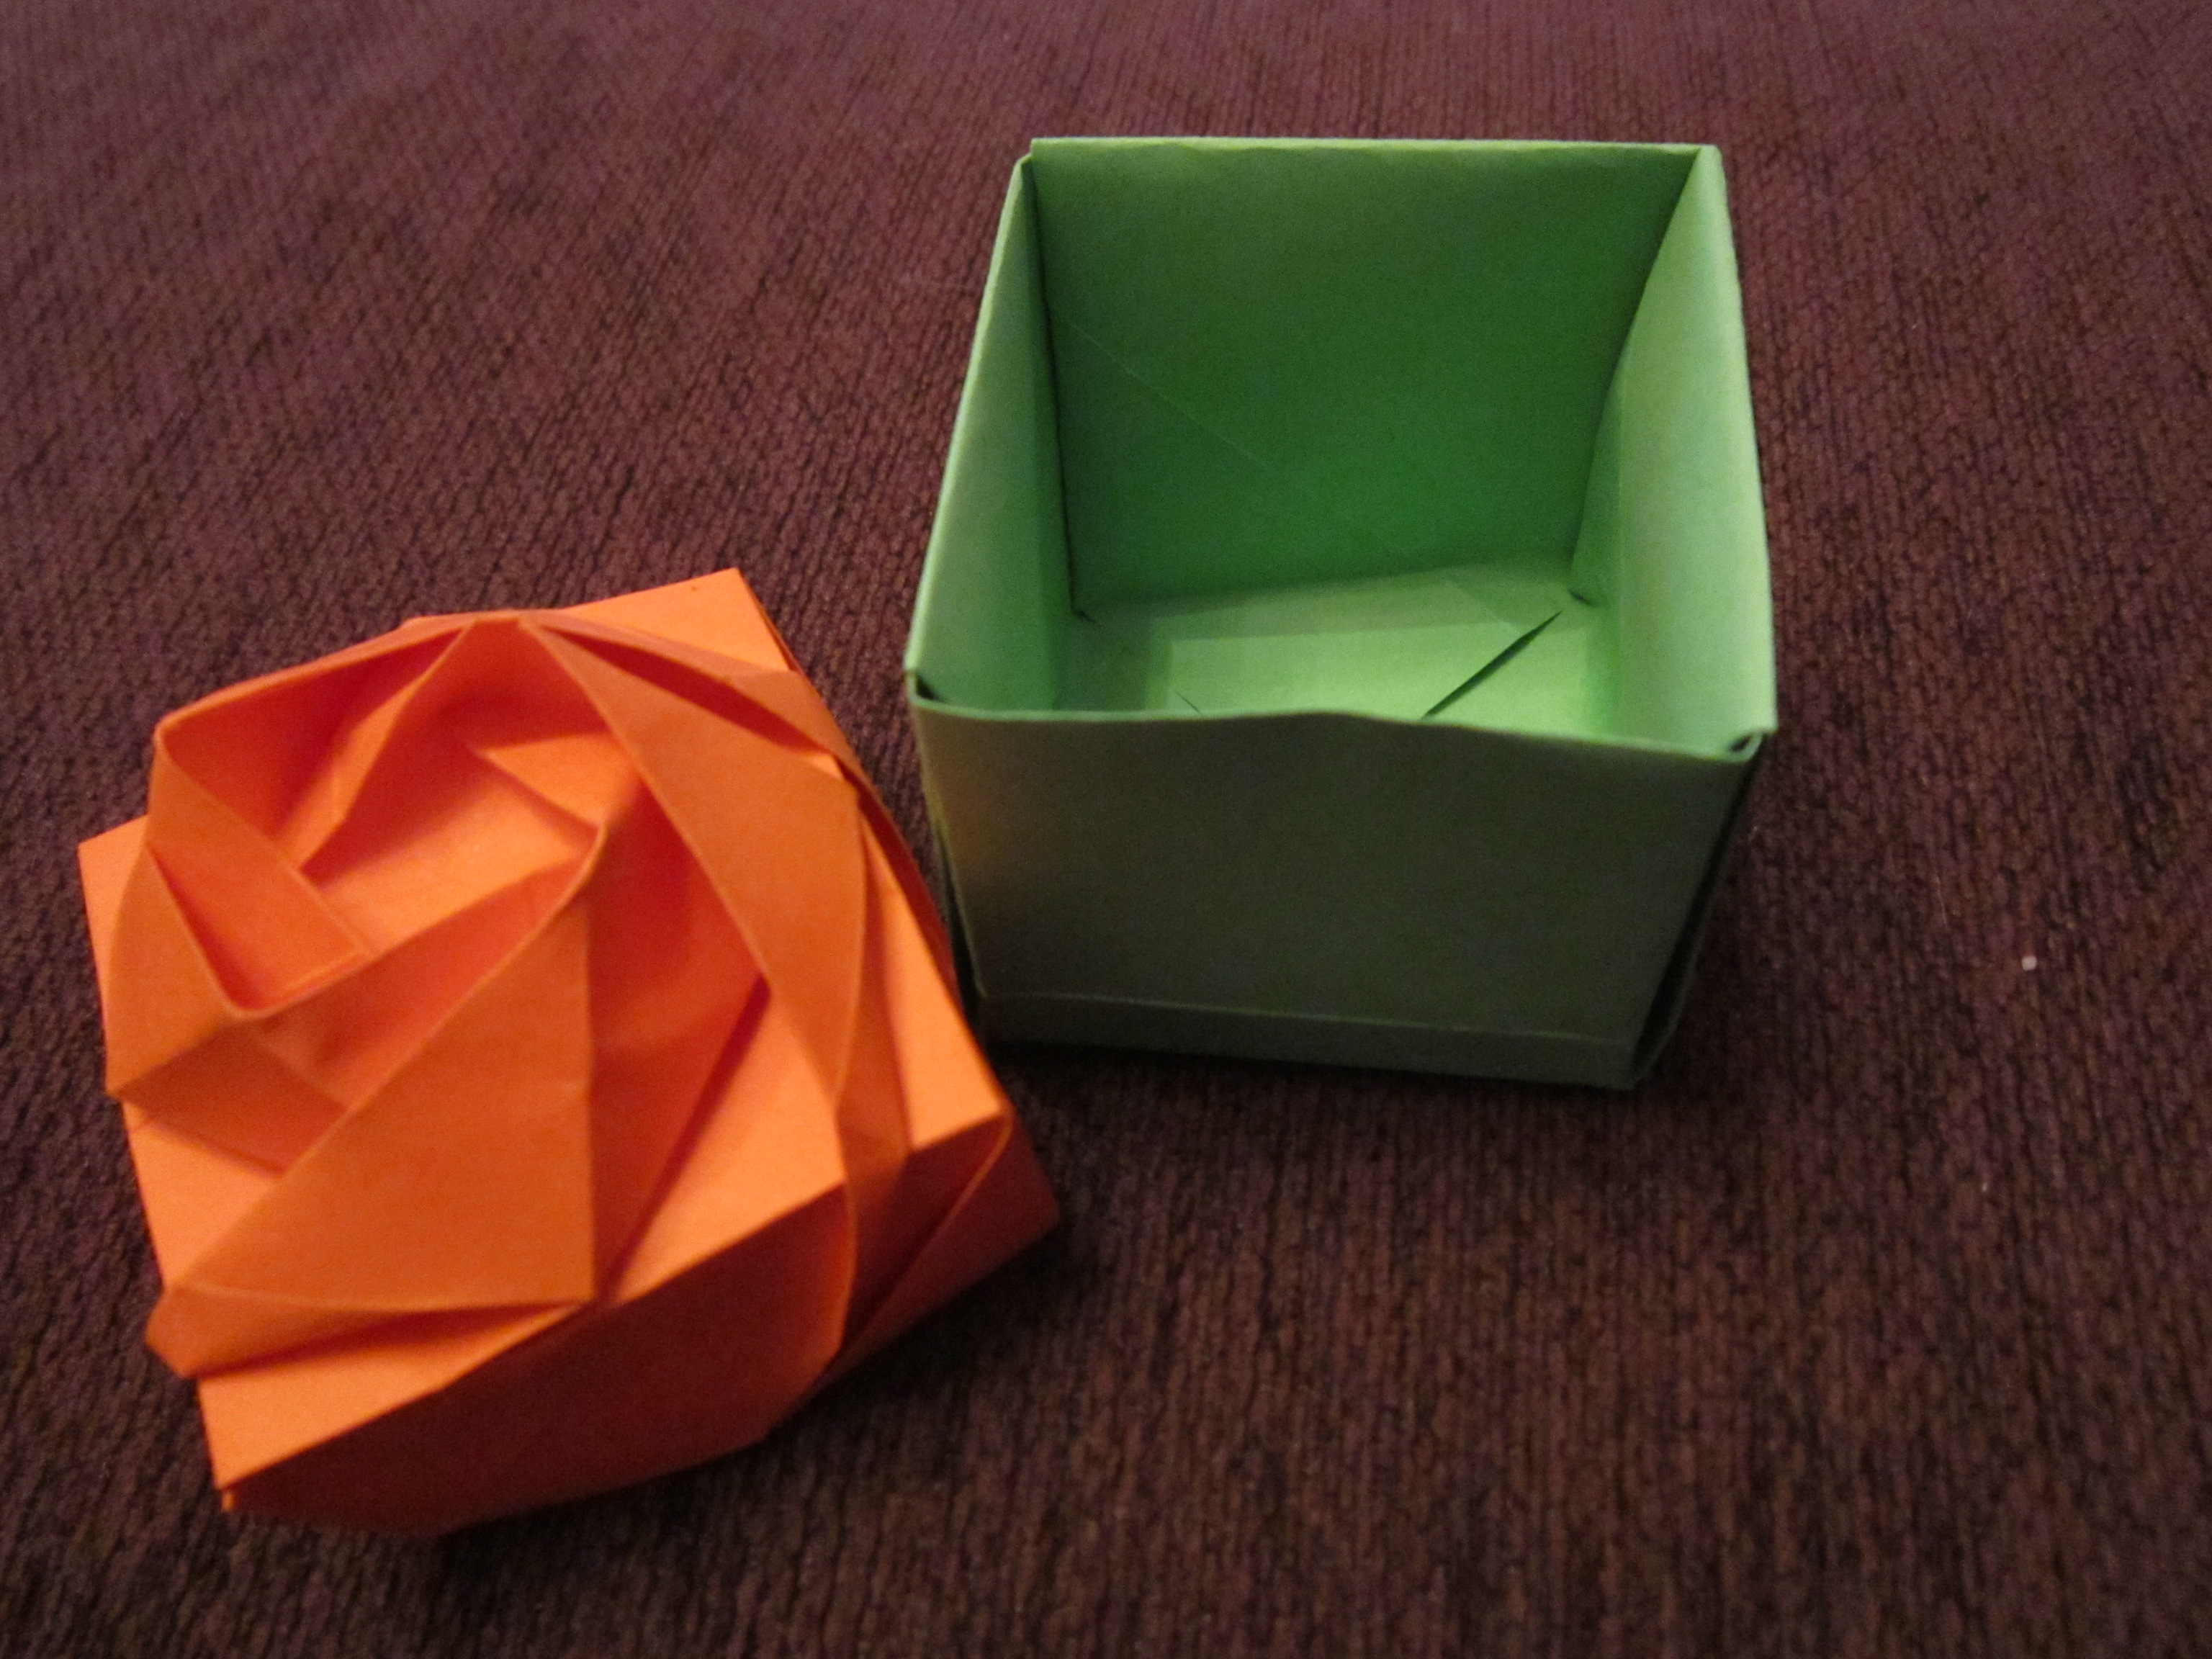 Tad 3 Rose Origami Box Thing A Day Forever